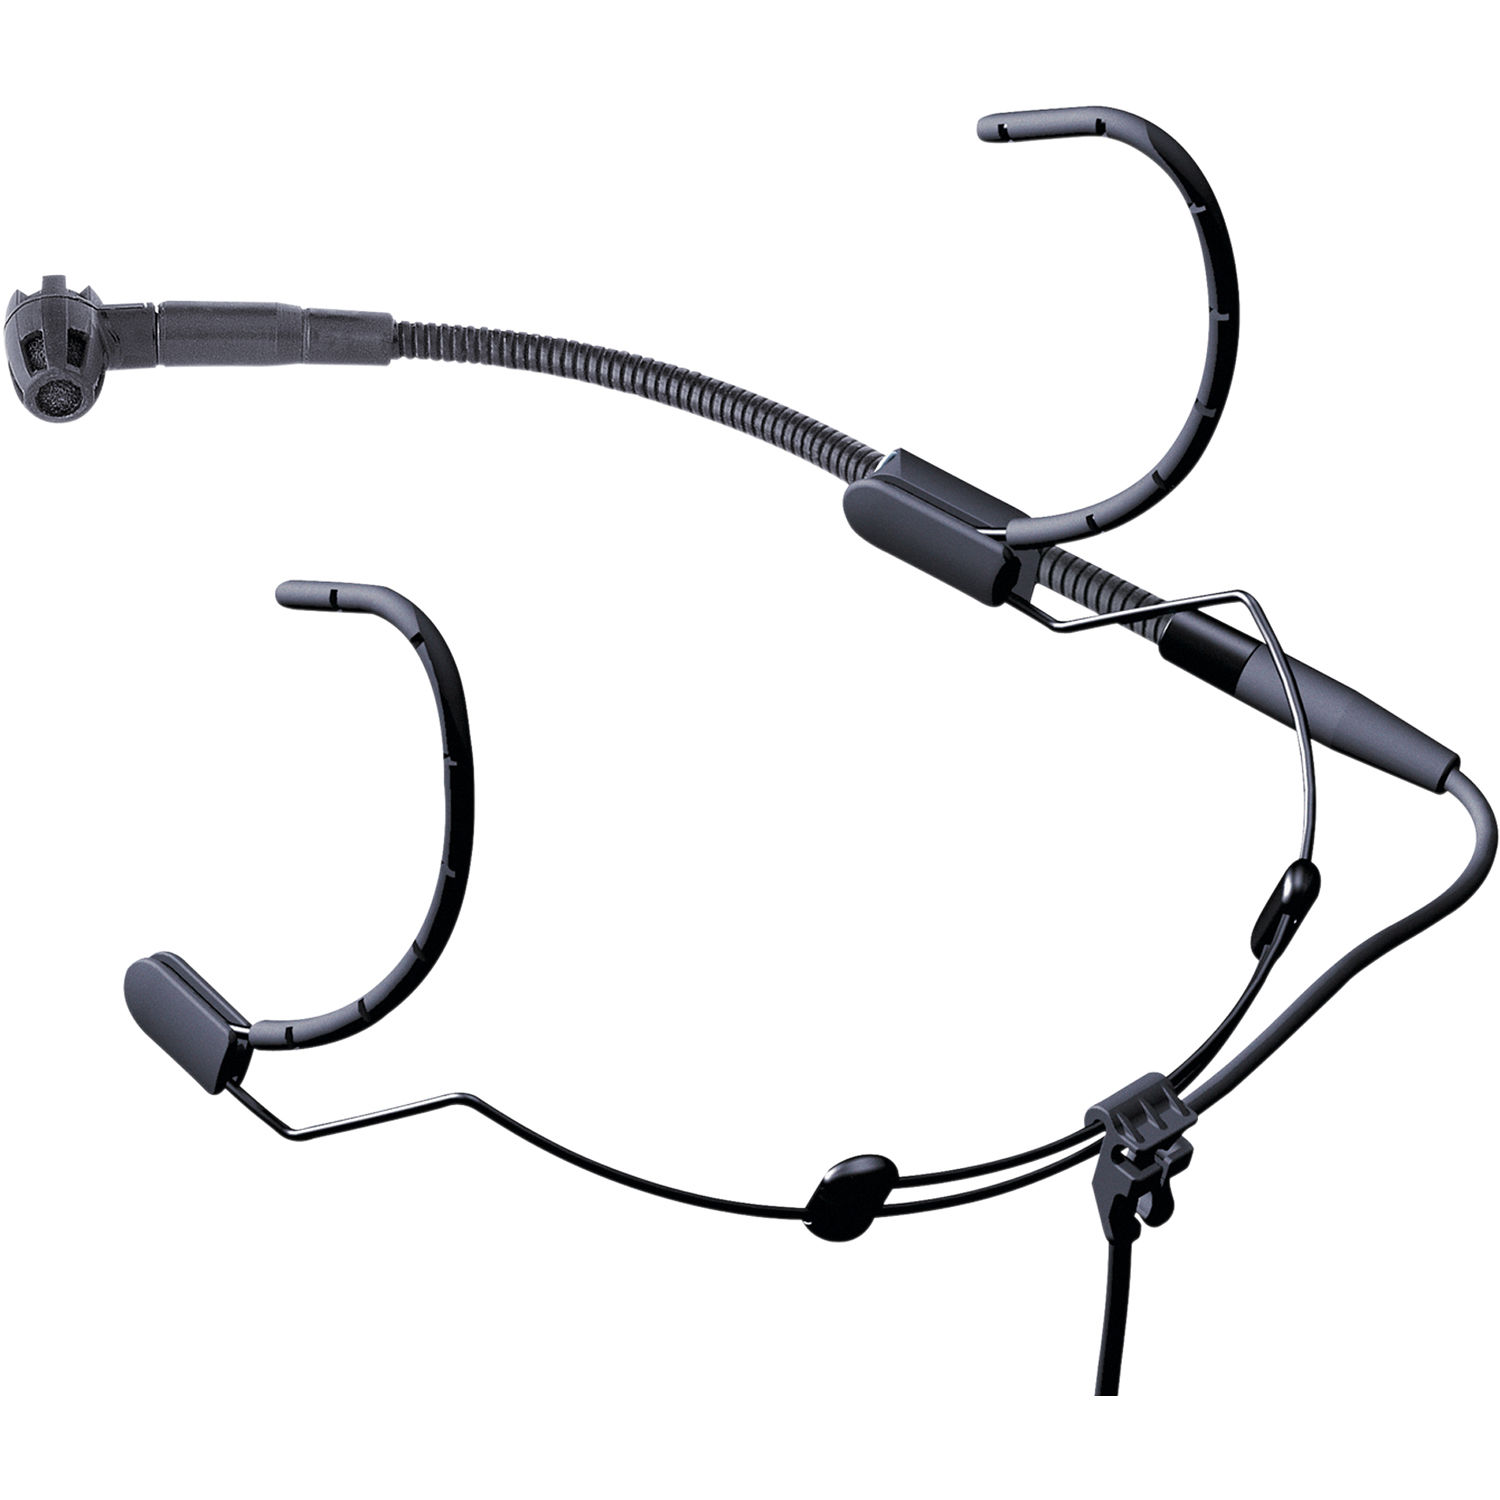 Audio Headset Earset Bh Photo Video Electret Microphone To Xlr Wiring Together With Sc4060 Dpa Microphones Akg C520 Head Worn Condenser Cardioid Connection